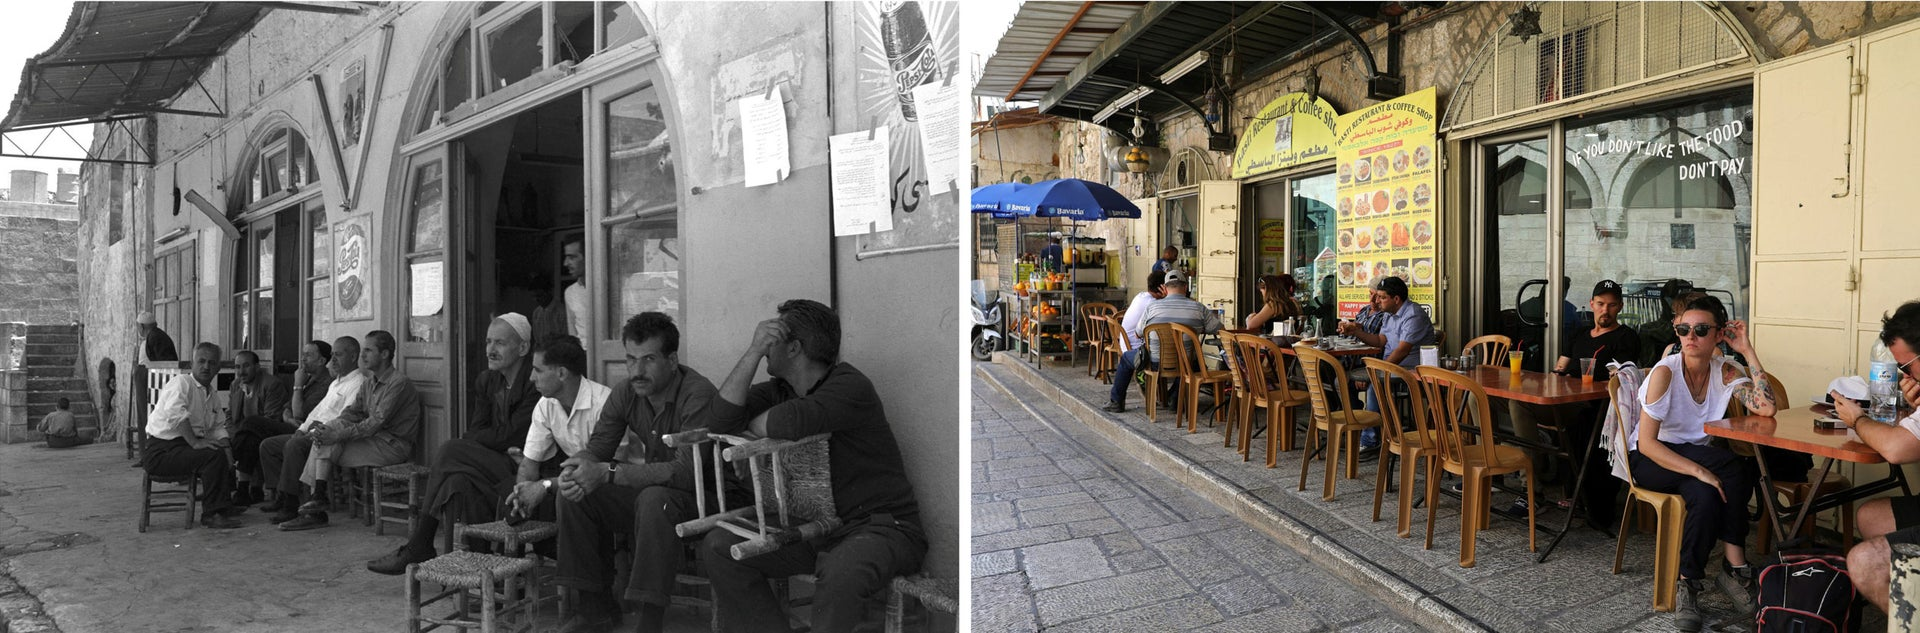 "A combination picture shows men sitting at a sidewalk cafe in Jerusalem's Old City, in this Government Press Office handout photo, taken June 19, 1967 (top) and the same location May 17, 2017. REUTERS/Moshe Pridan/Government Press Office/Handout via Reuters (top)/Ammar Awad THIS PICTURE WAS PROVIDED BY A THIRD PARTY. REUTERS IS UNABLE TO INDEPENDENTLY VERIFY THE AUTHENTICITY, CONTENT, LOCATION OR DATE OF THIS IMAGE. FOR EDITORIAL USE ONLY. NOT FOR SALE FOR MARKETING OR ADVERTISING CAMPAIGNS. SEARCH ""1967 WAR"" FOR THIS STORY. SEARCH ""WIDER IMAGE"" FOR ALL STORIES."